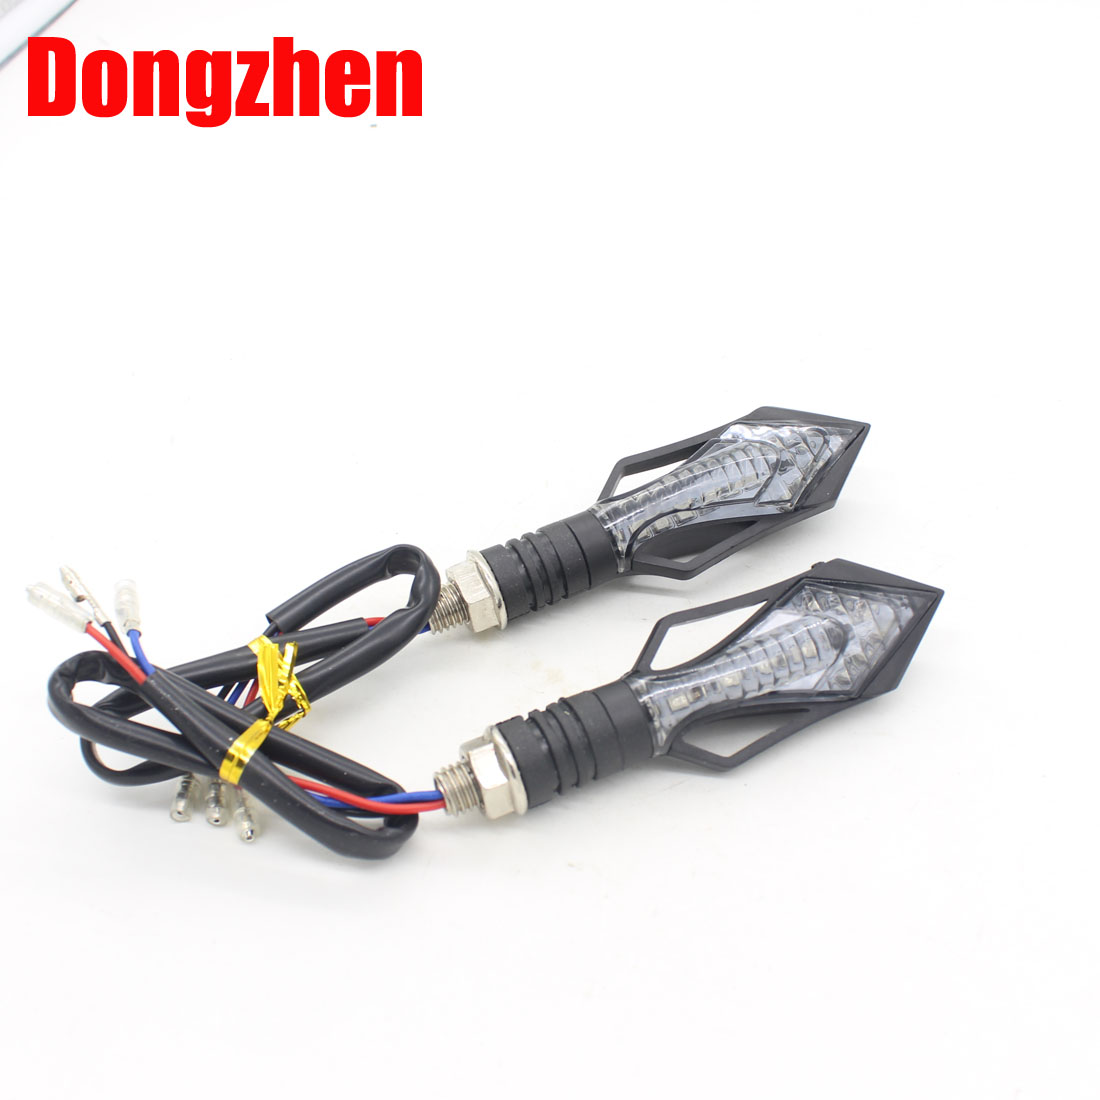 Dongzhen Universal Motorcycle LED Turn Signal Indicator Amber Light Fit For Suzuki Bandit 600 Honda CBR Kawasaki Ninja 2pcs high quality 7 pin turn signal flasher relay fr led indicator gsxr bandit 600 750 1200 gsx 1400 fits suzuki ca199